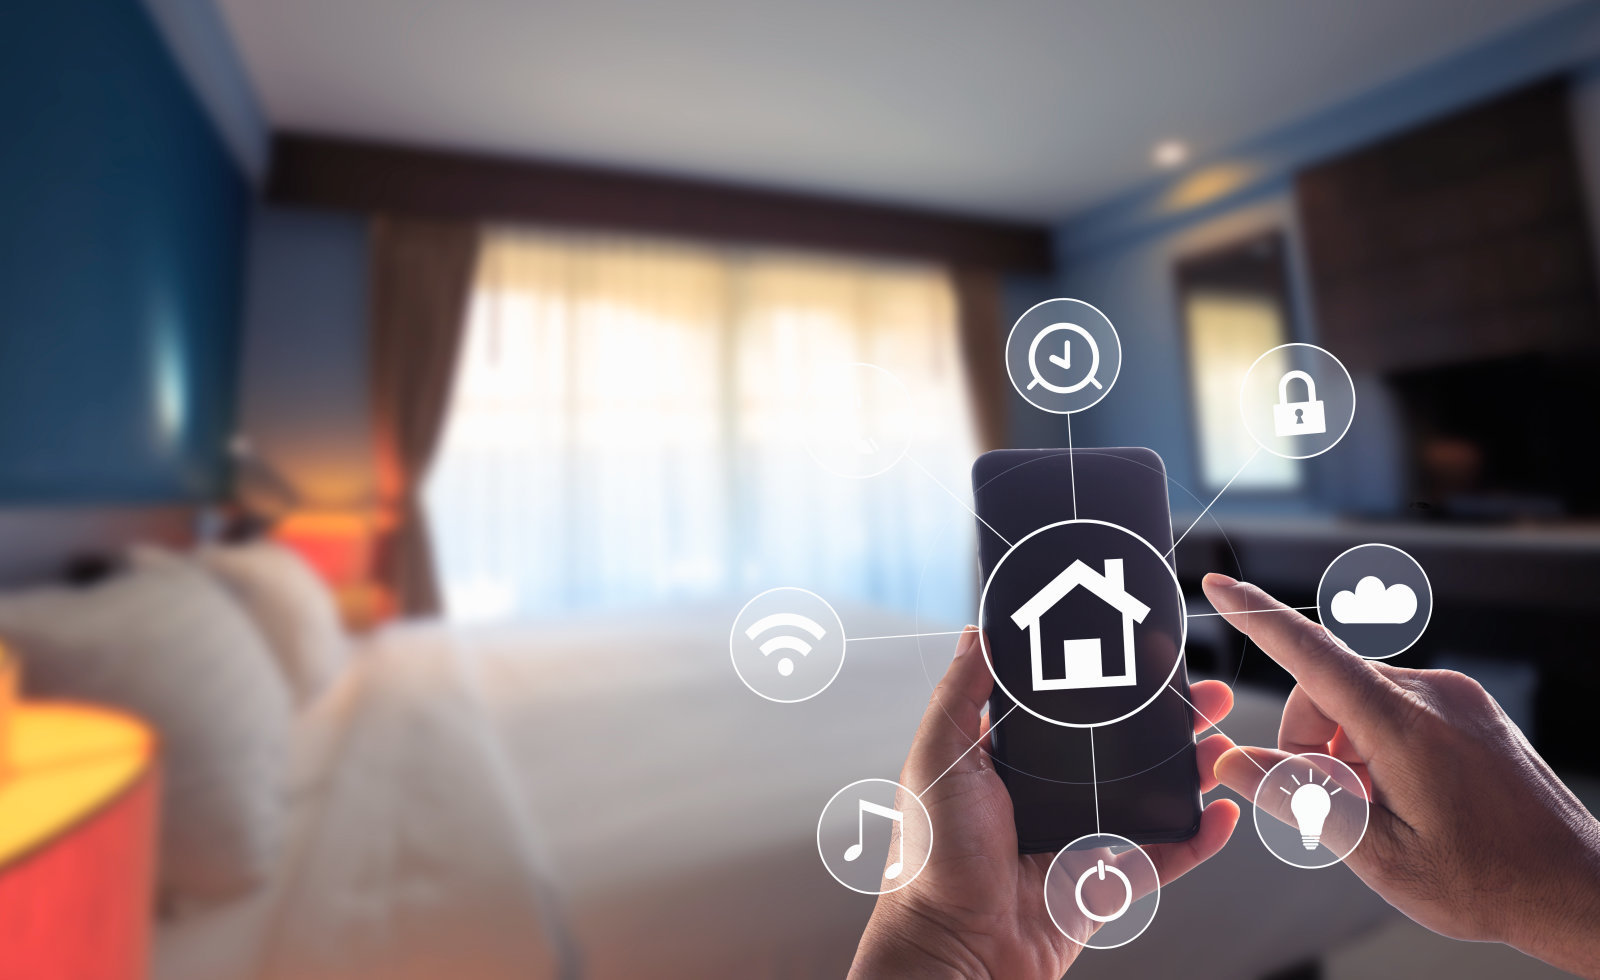 Can smart homes be infected with viruses?